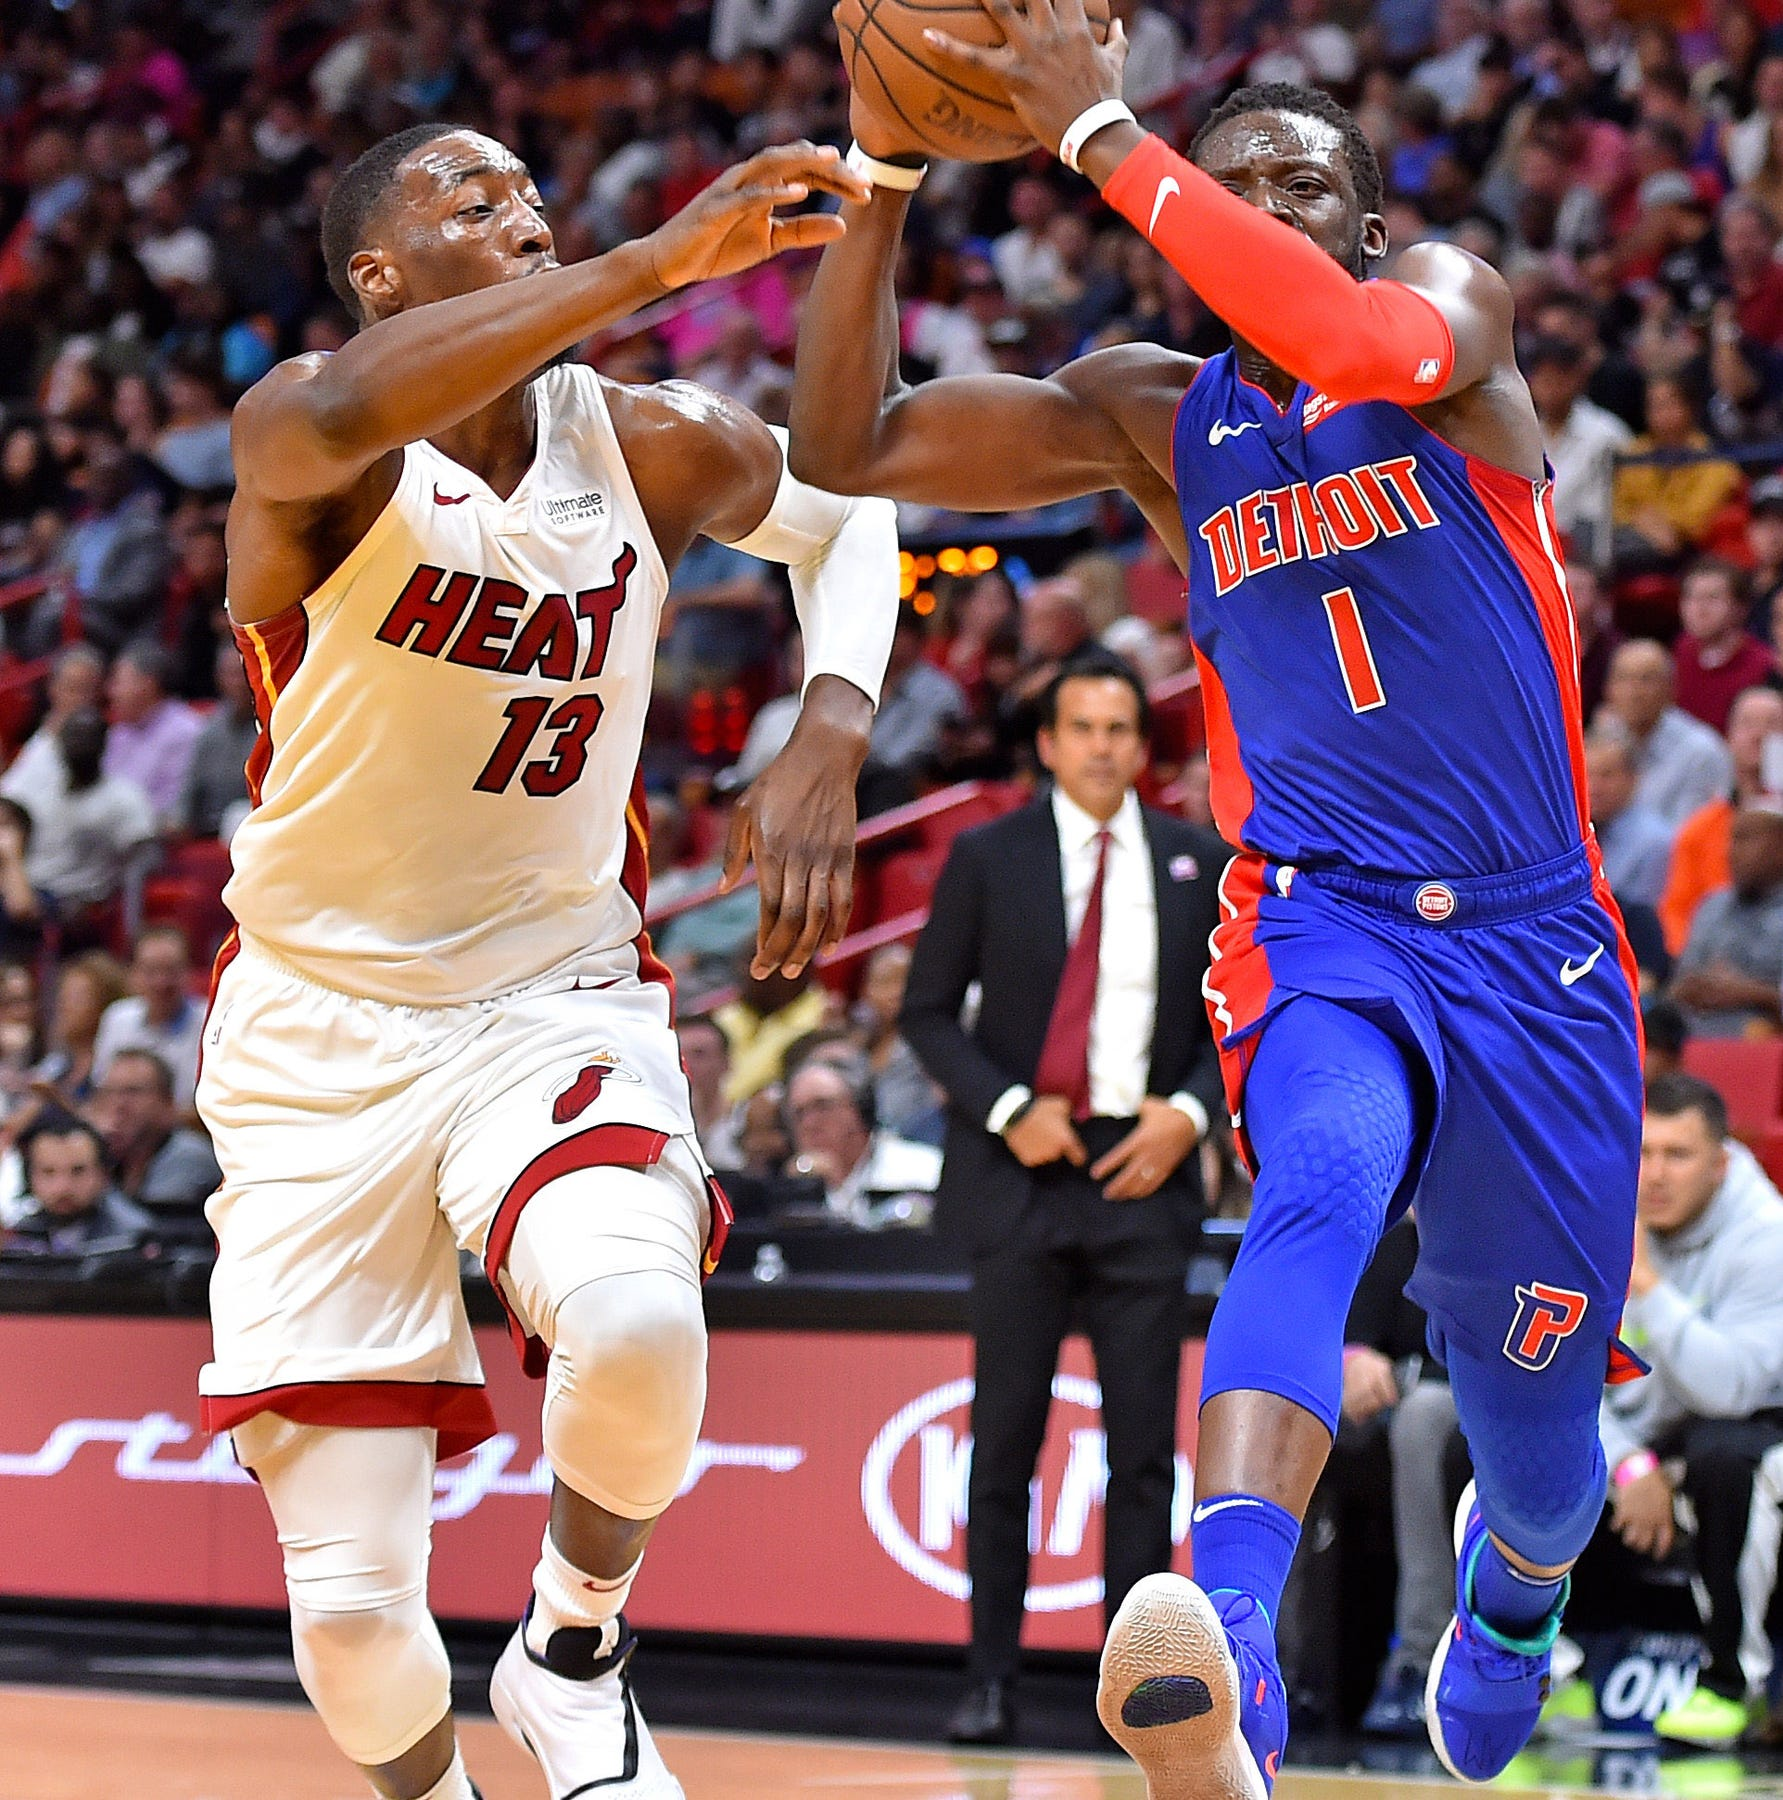 Can Detroit Pistons overcome Reggie Jackson injury in playoff push?